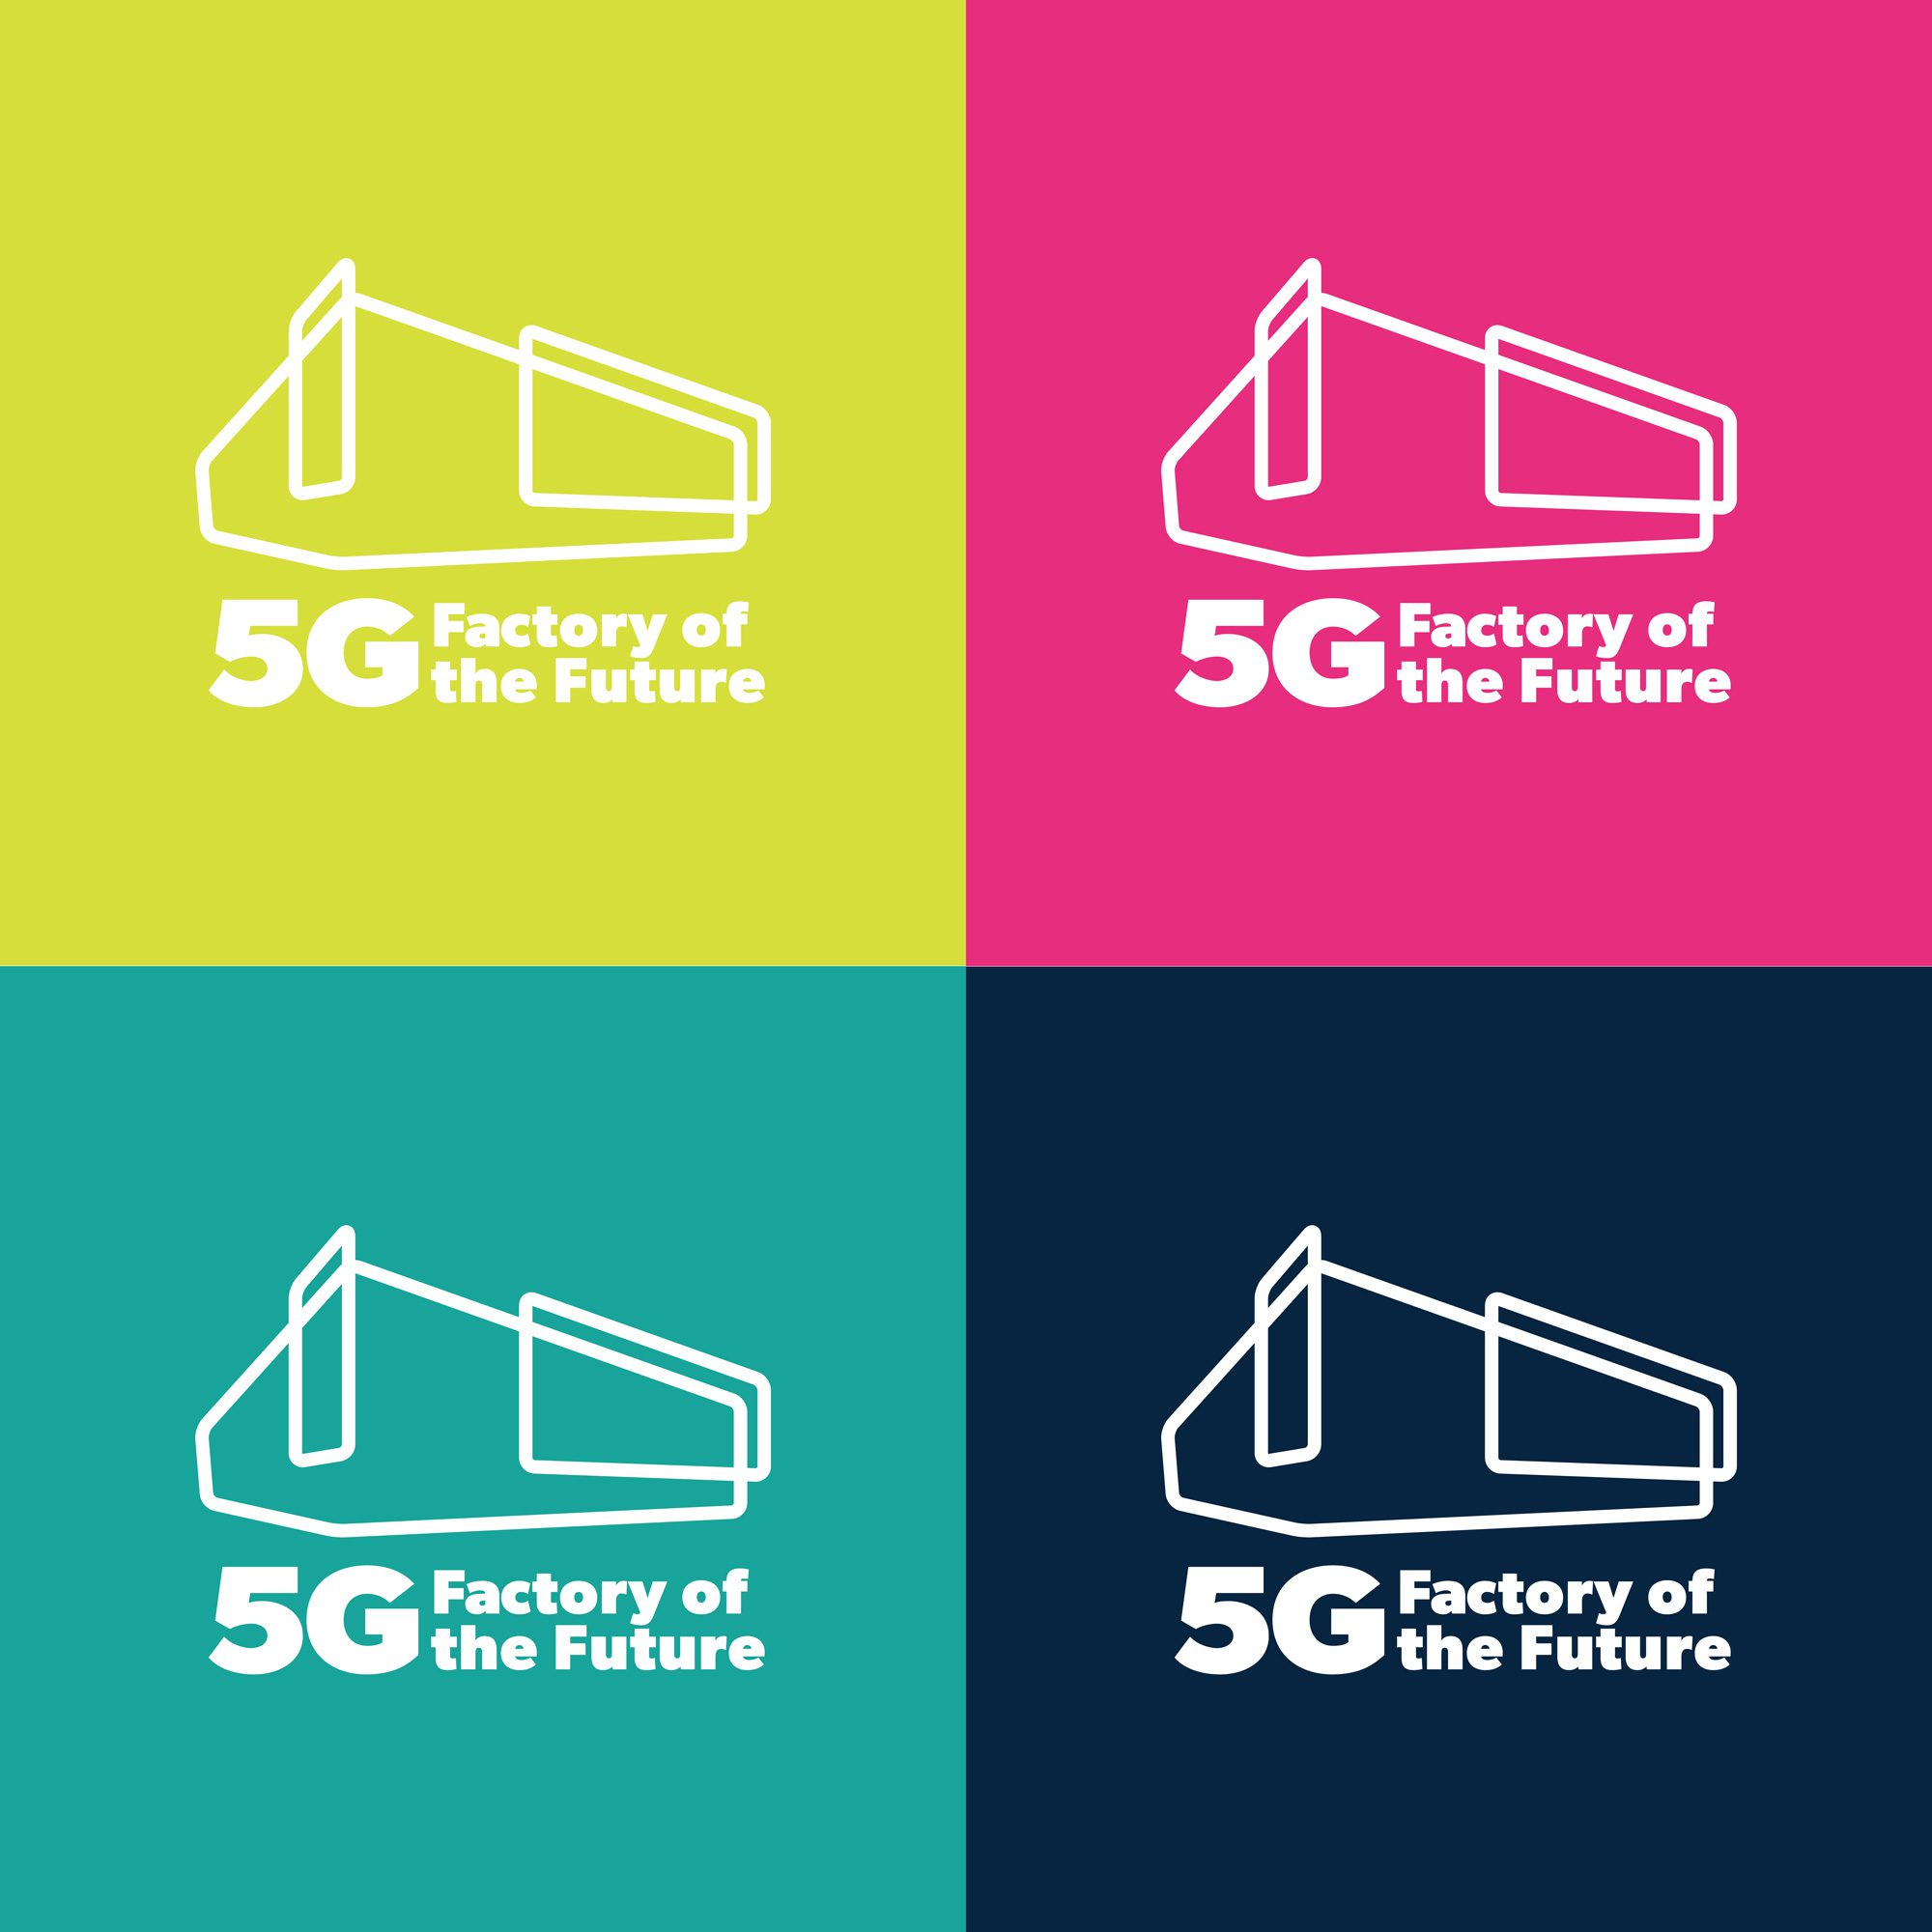 New brand, website design and marketing for 5G Factory of the Future